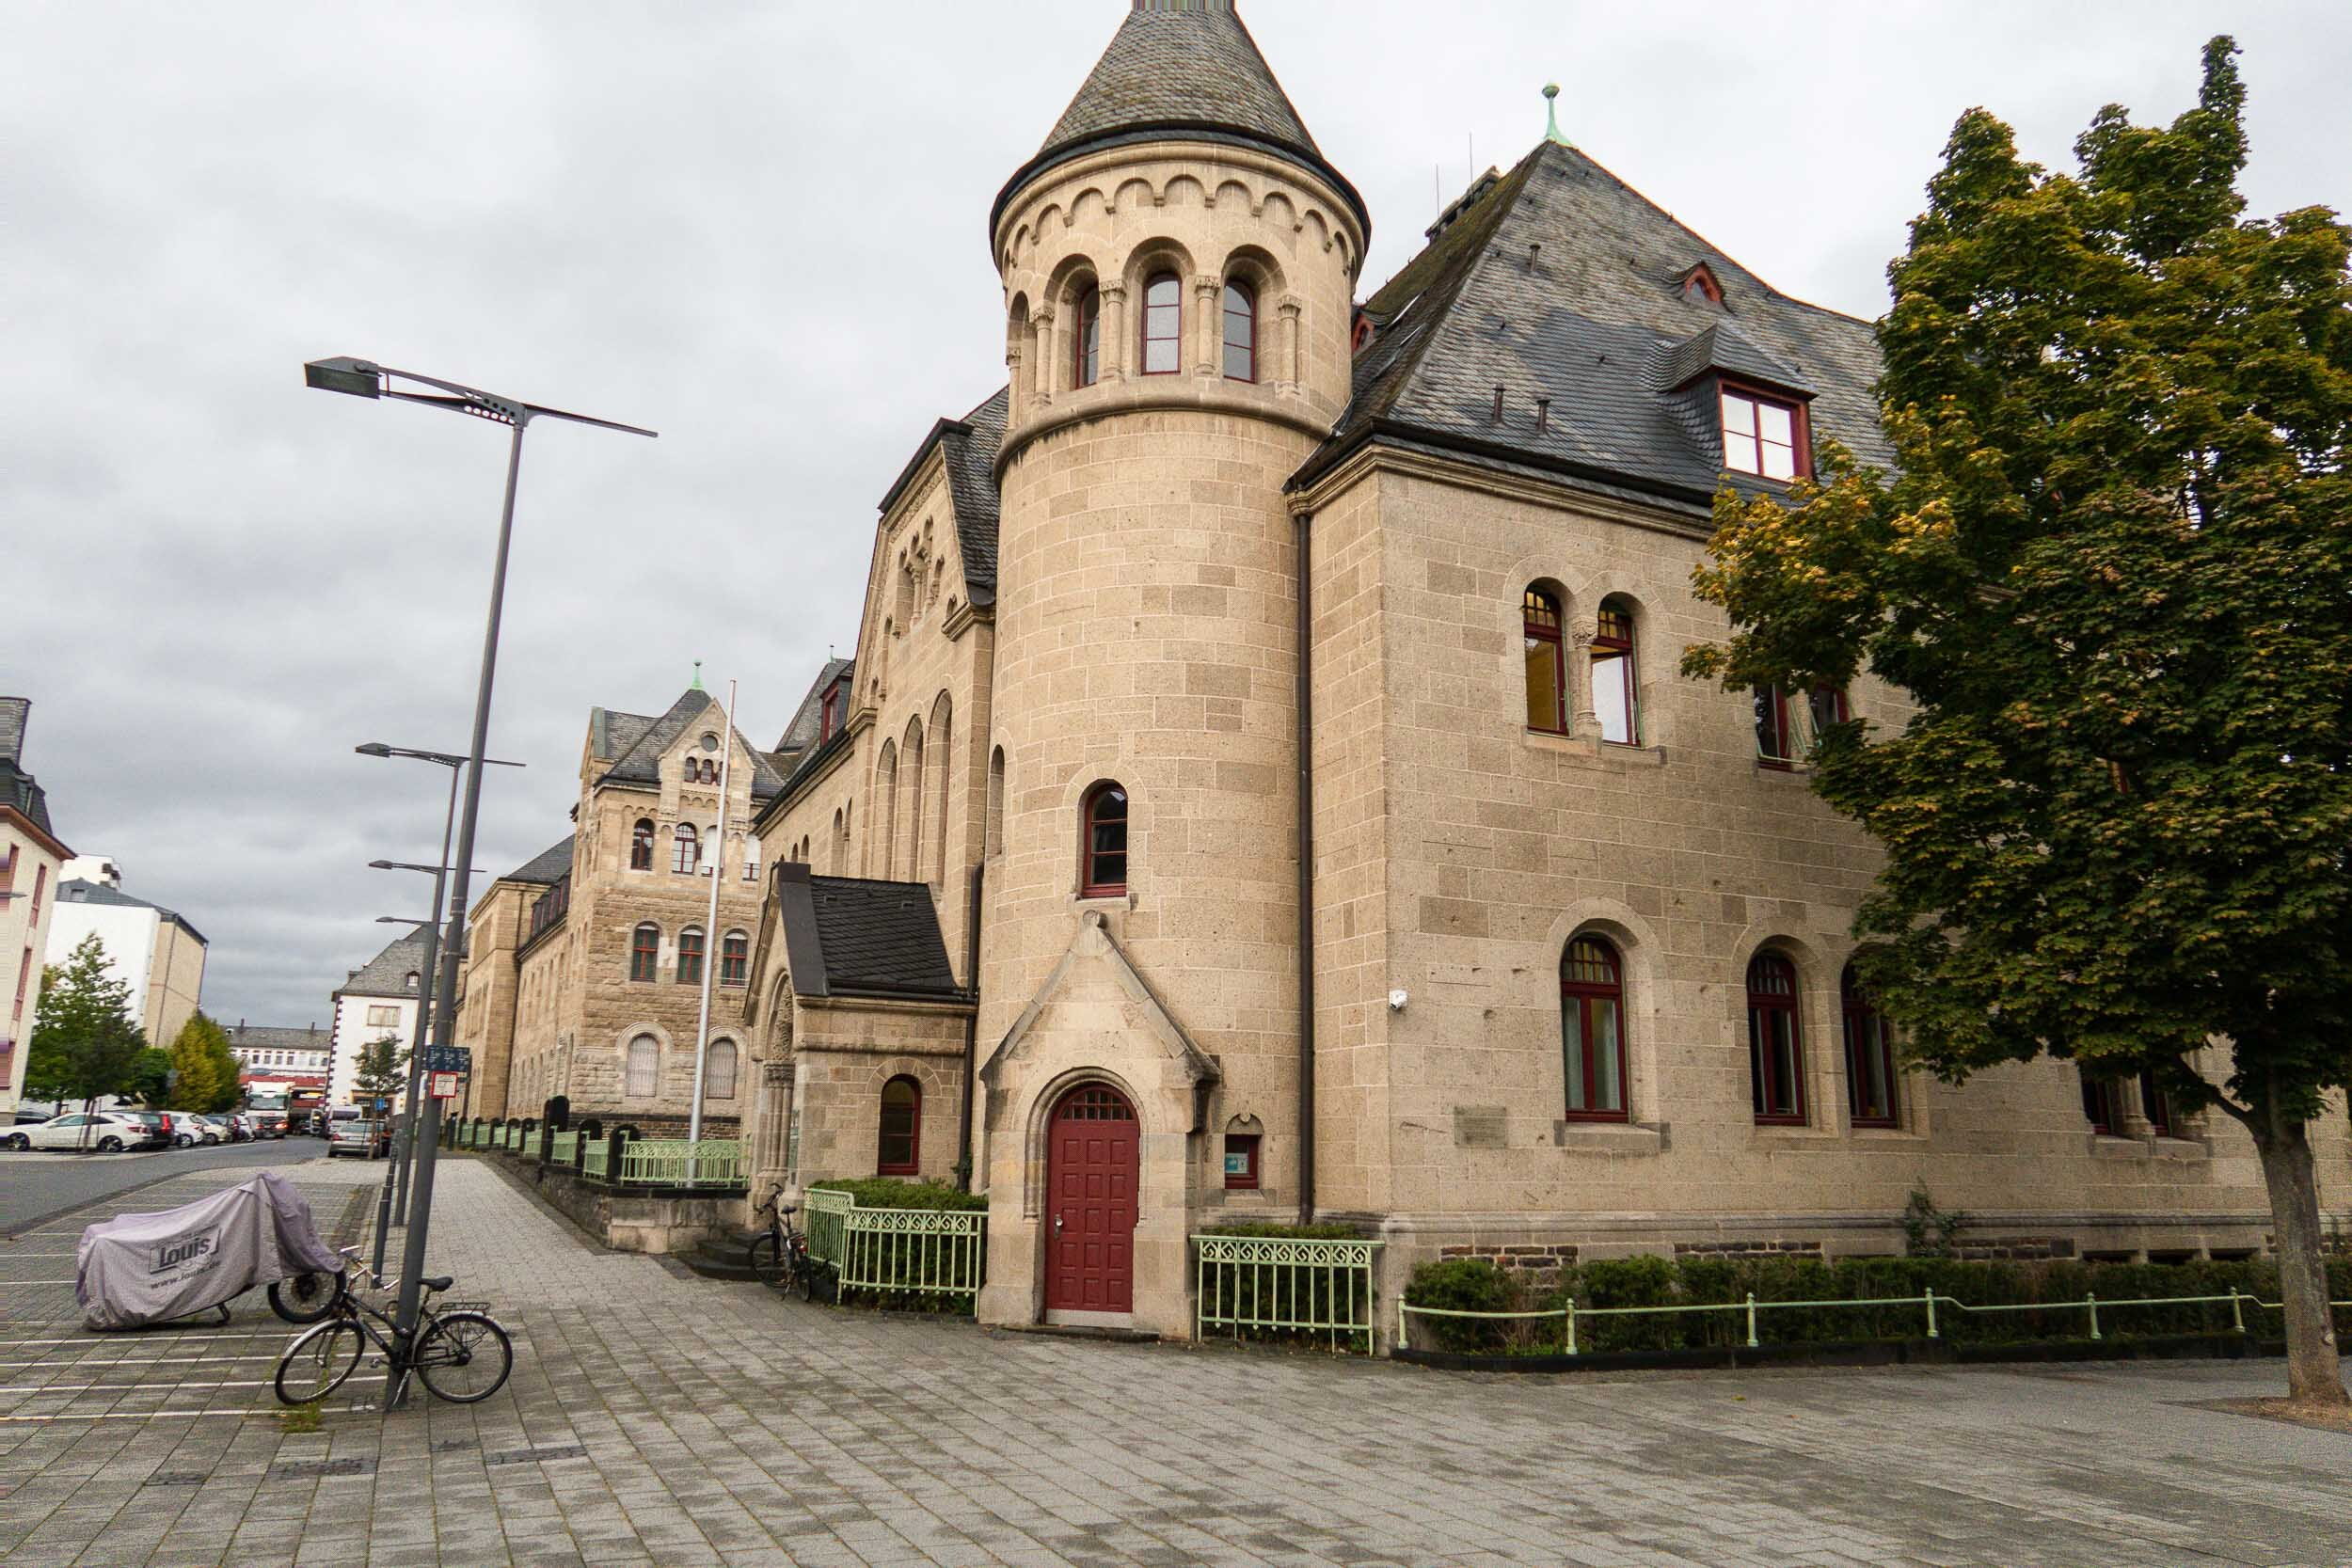 The Electoral Palace in Koblenz, Germany and other sites you MUST see!